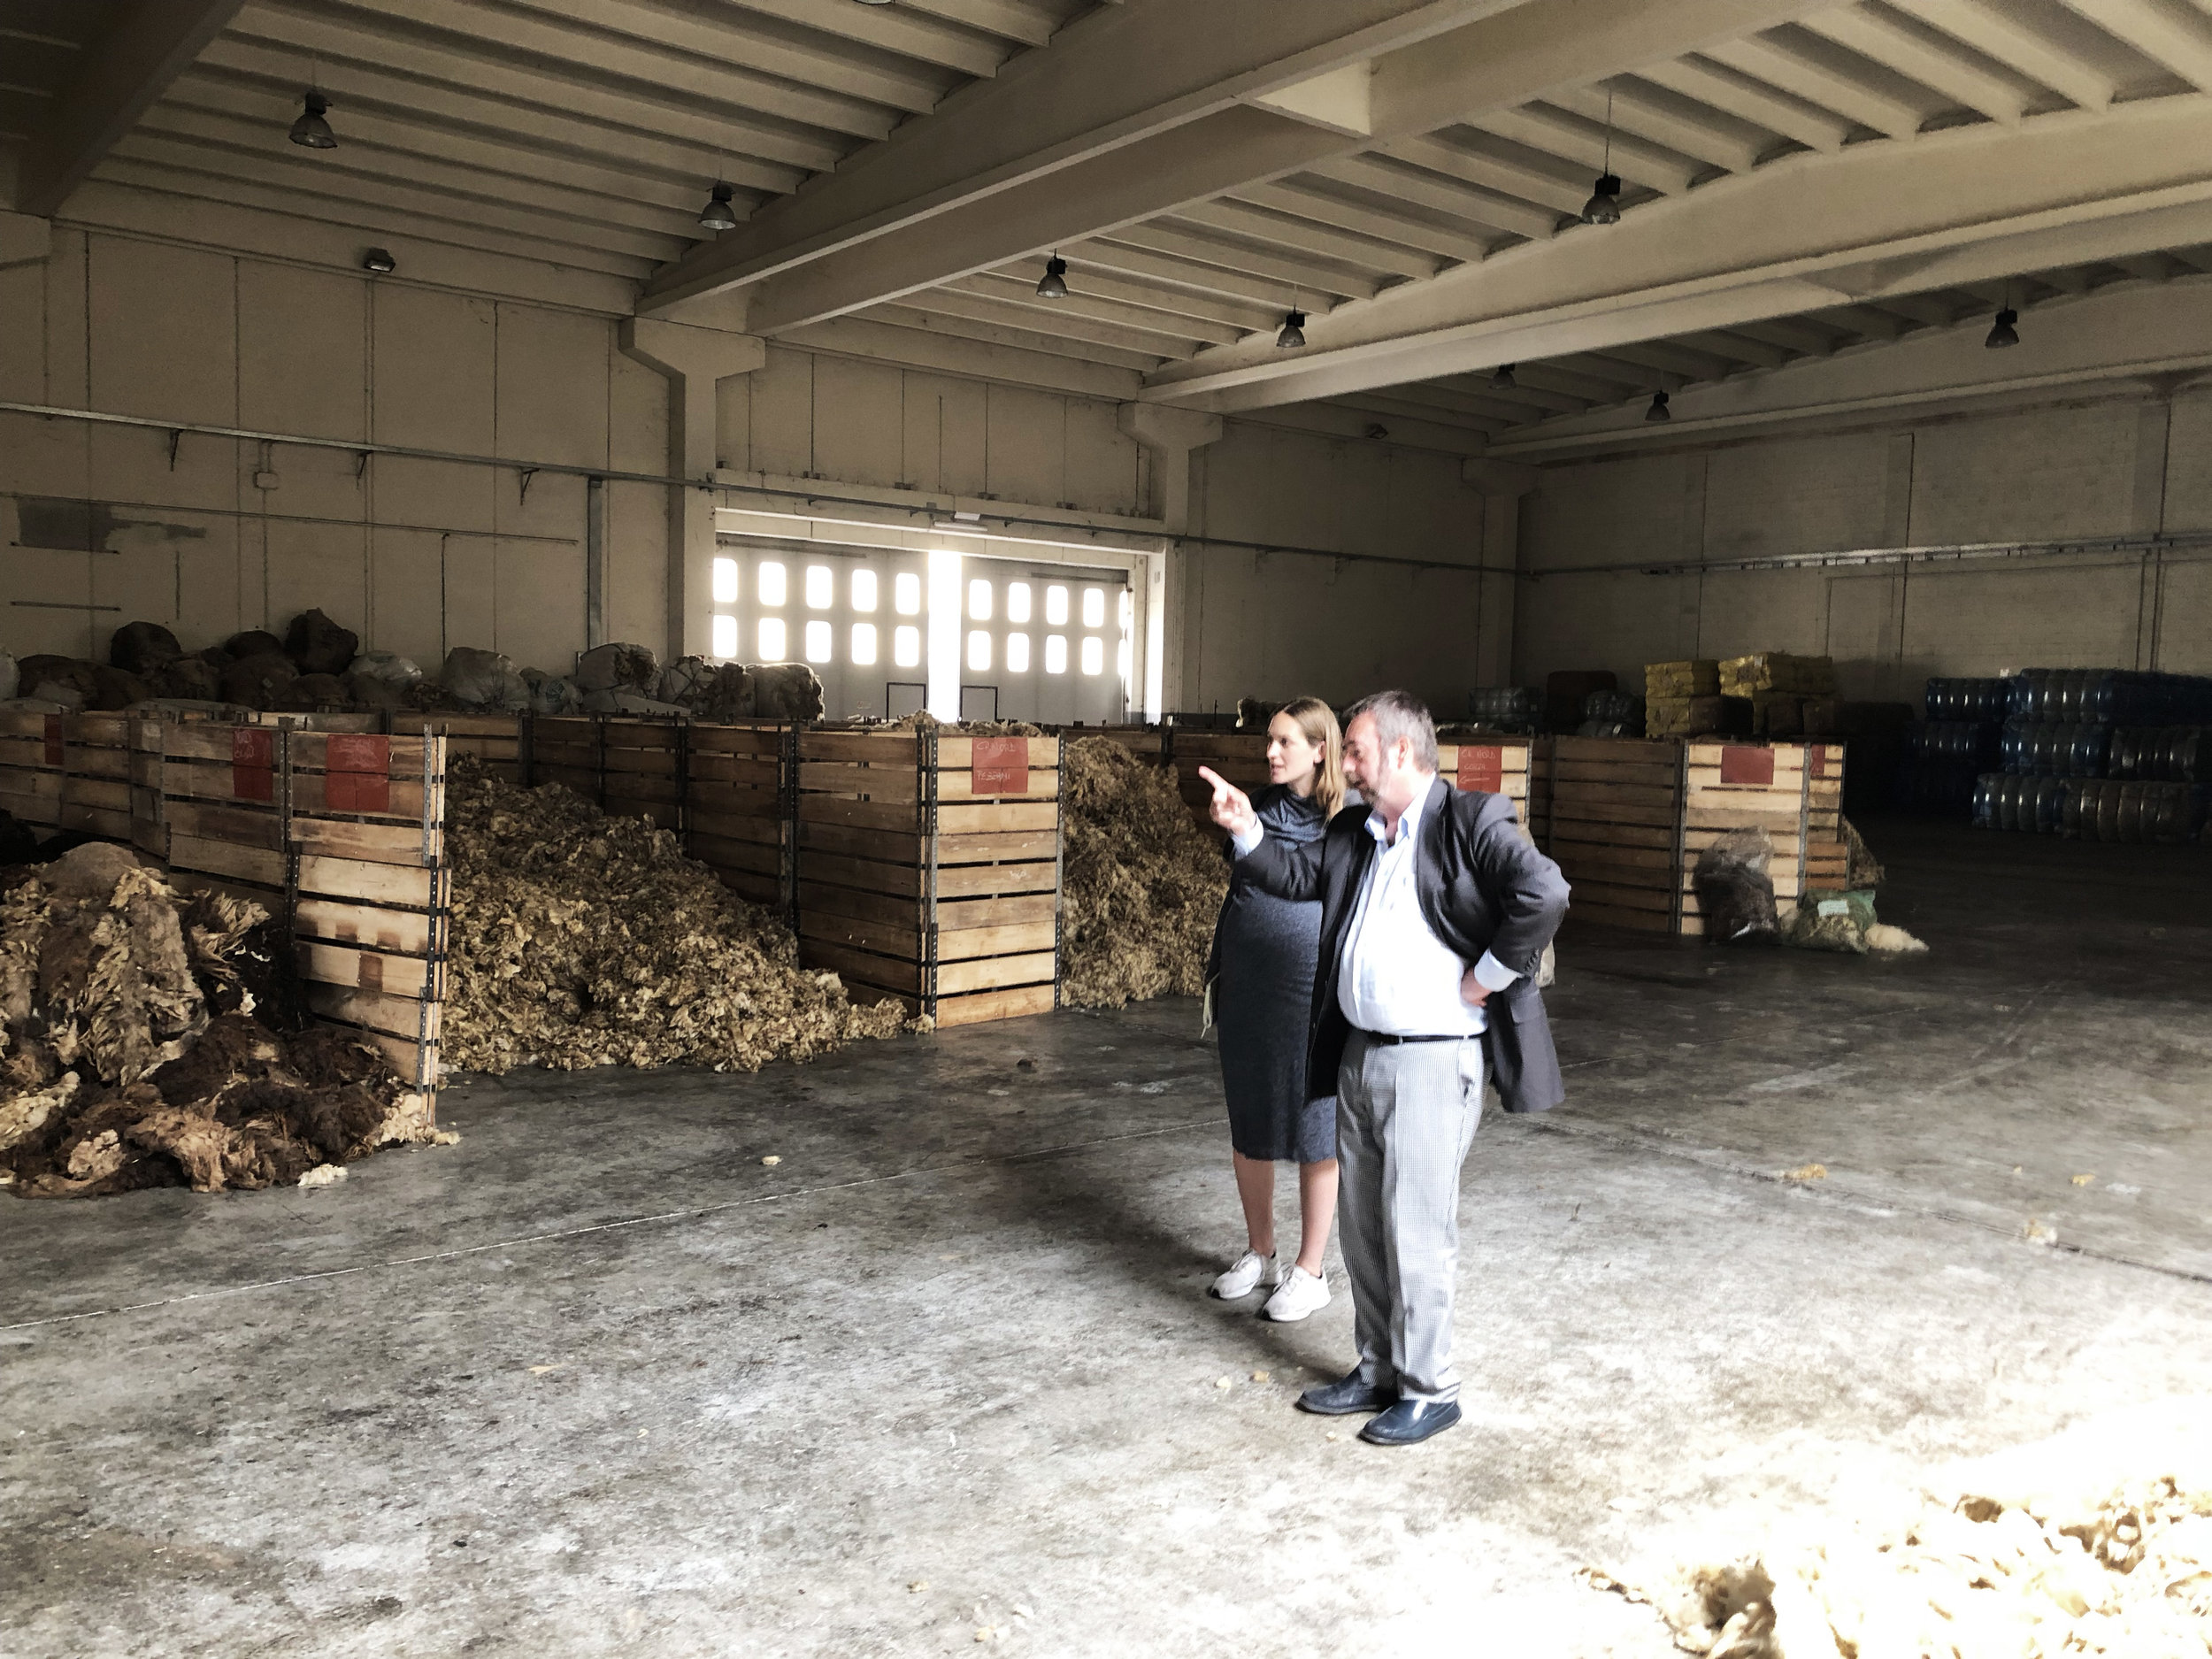 Nigel and Lisa stand in the middle of a sorting shed amongst piles of unsorted wool